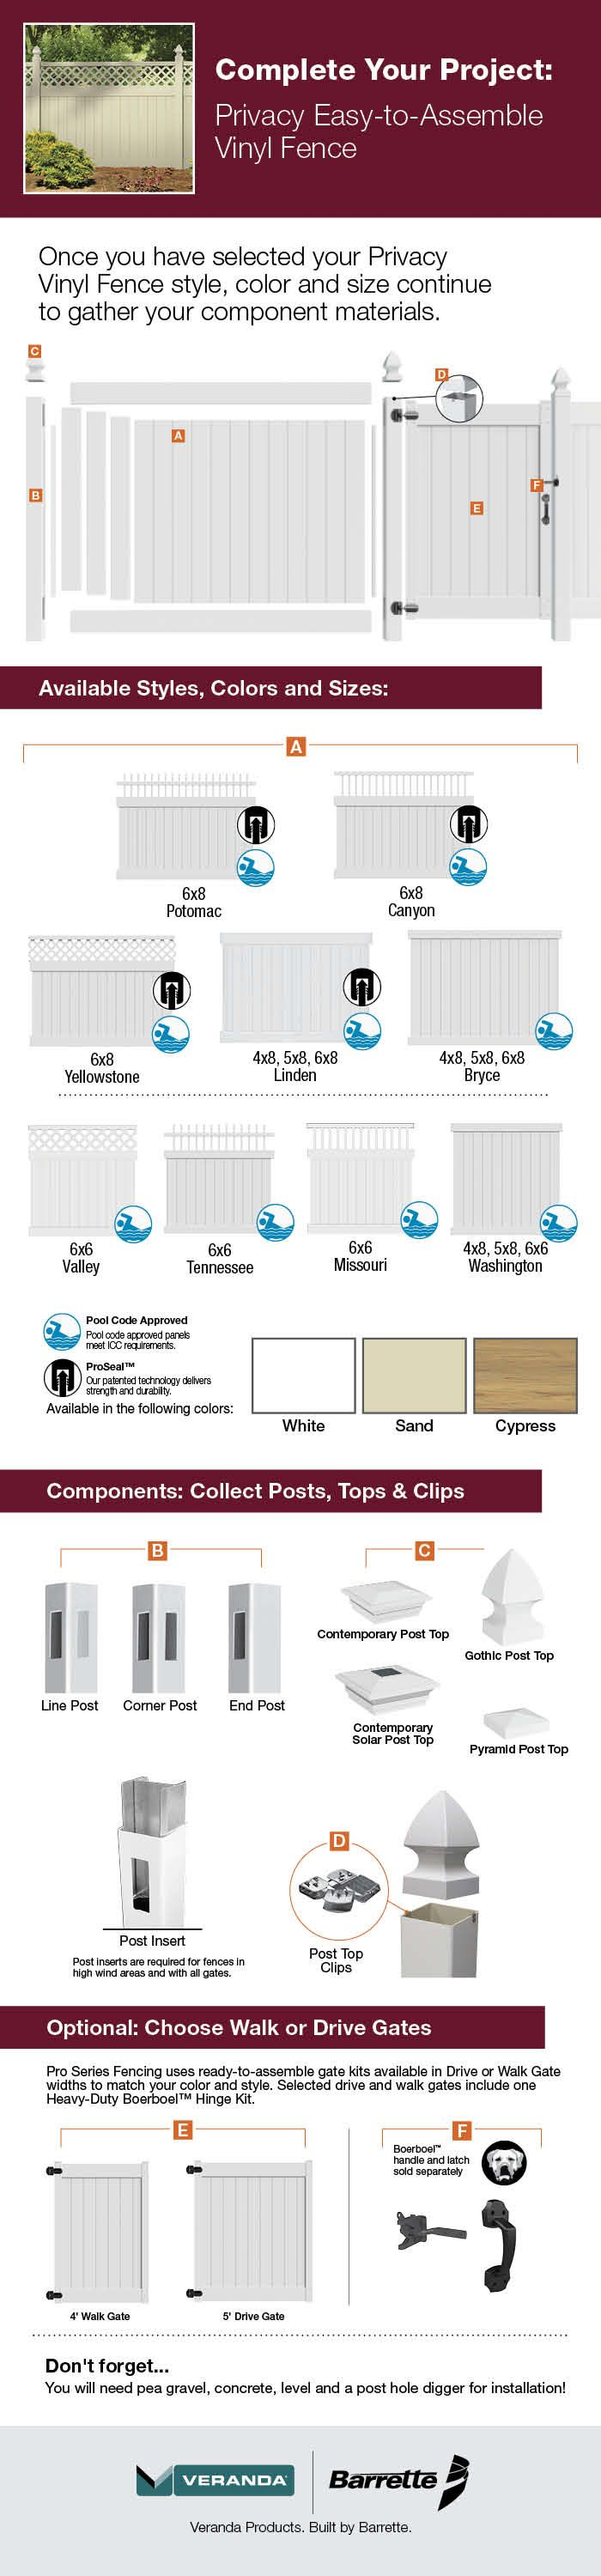 Veranda White Vinyl Linden Pro Privacy Fence Panel Kit (Common: 6 ft. x 8 ft.; Actual: 68 in. x 91 in.)-73013298 - The Home Depot